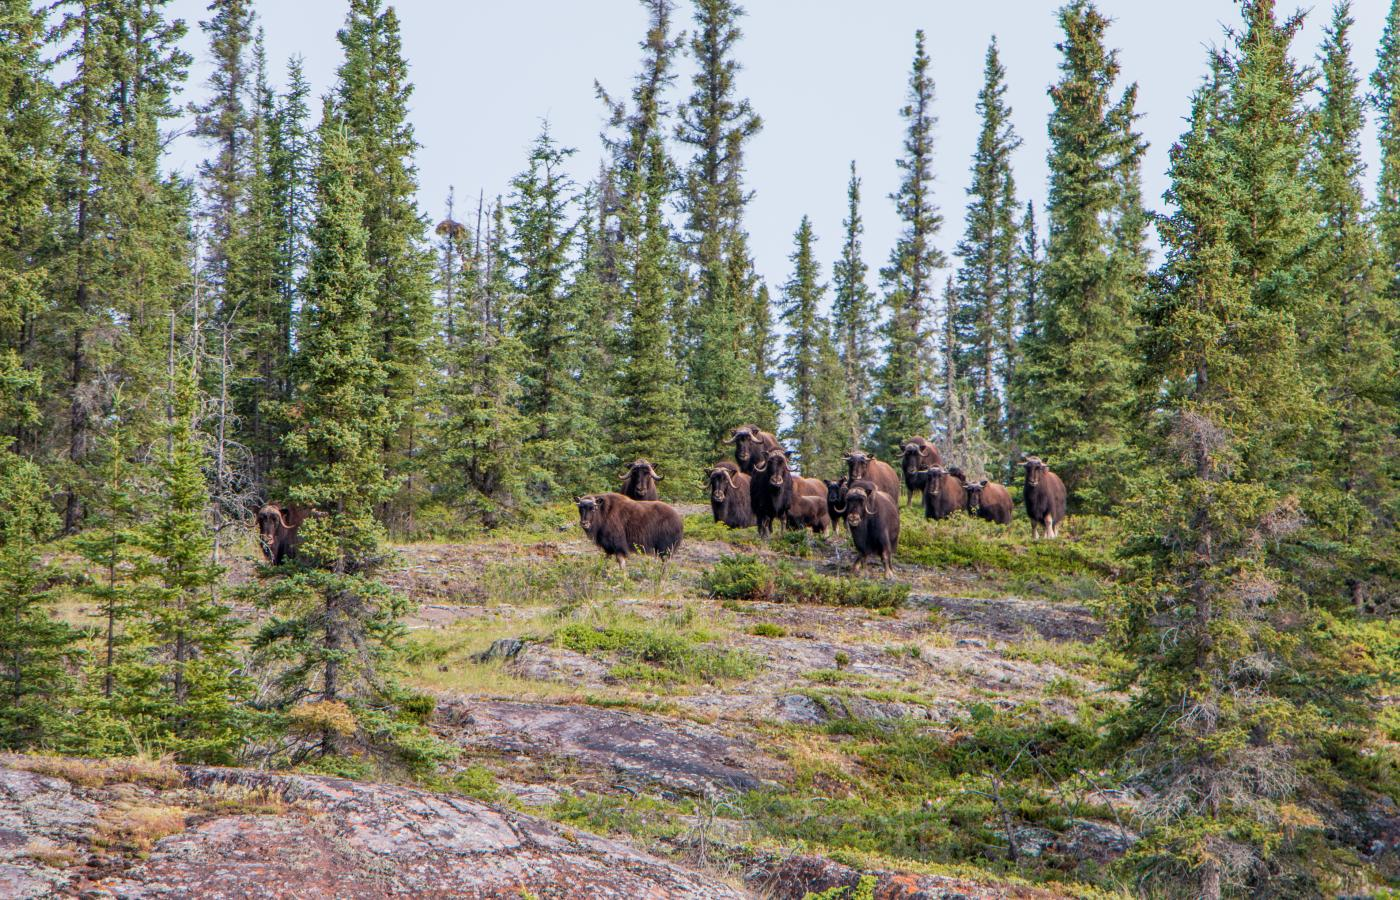 A herd of muskoxen in the Northwest Territories